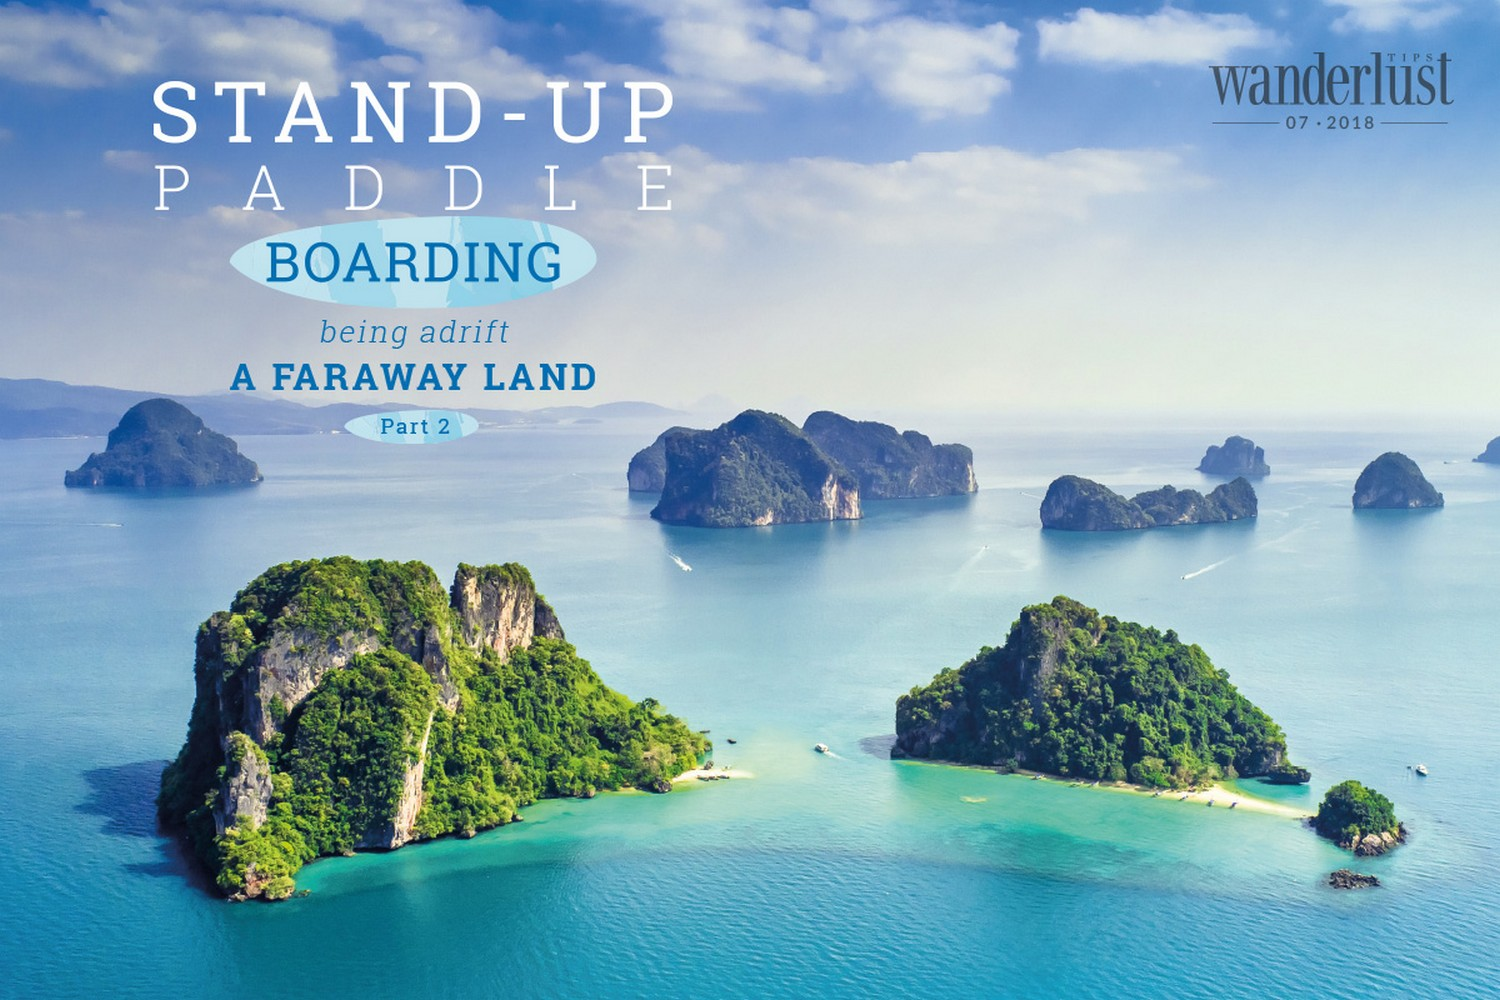 Wanderlust Tips Magazine | Stand-up Paddle boarding being adrift a faraway land (part 2)